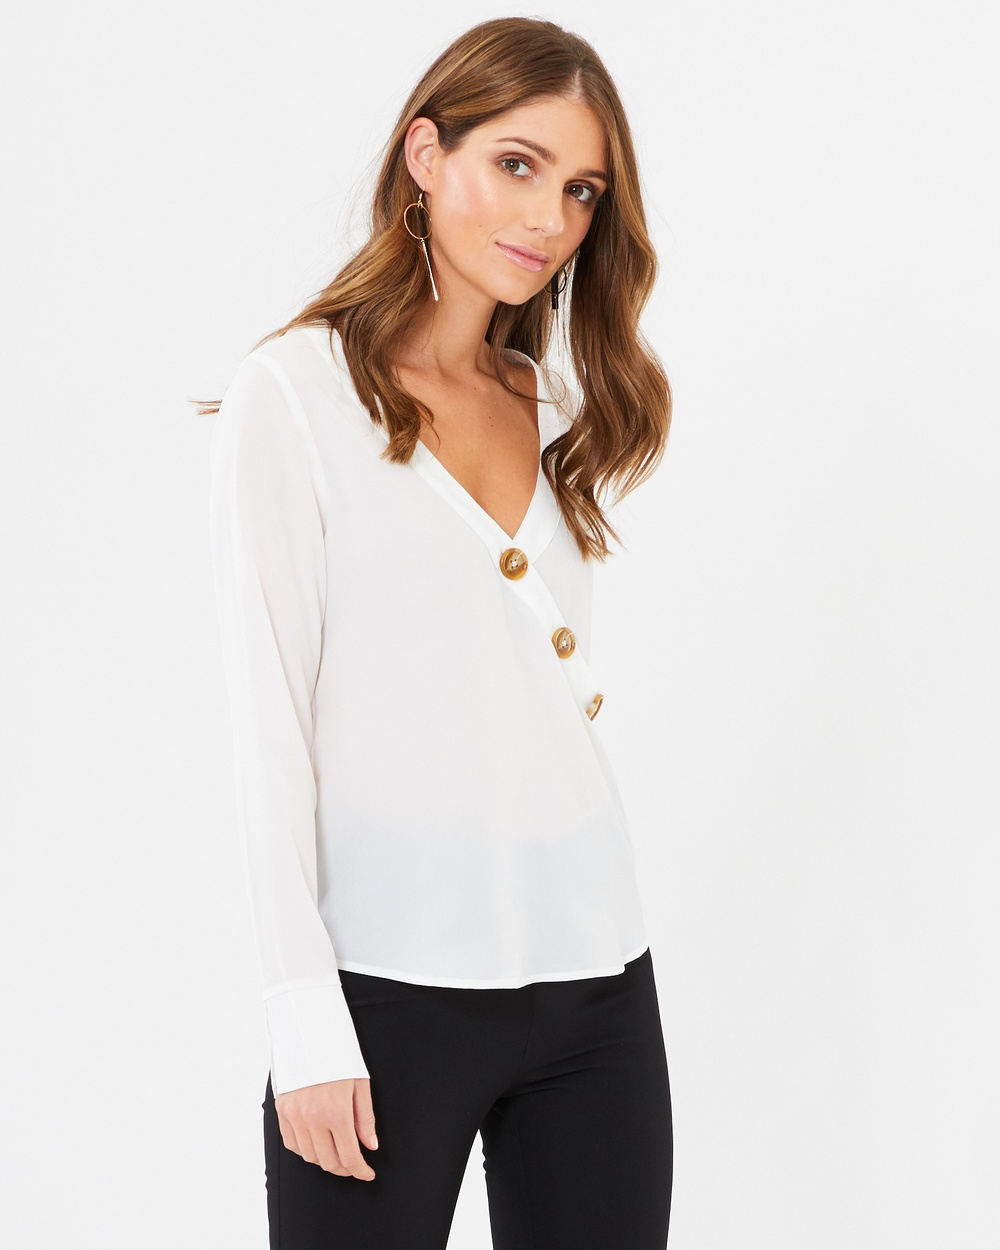 CHANCERY Jenna Blouse Cropped tops White Jenna Blouse